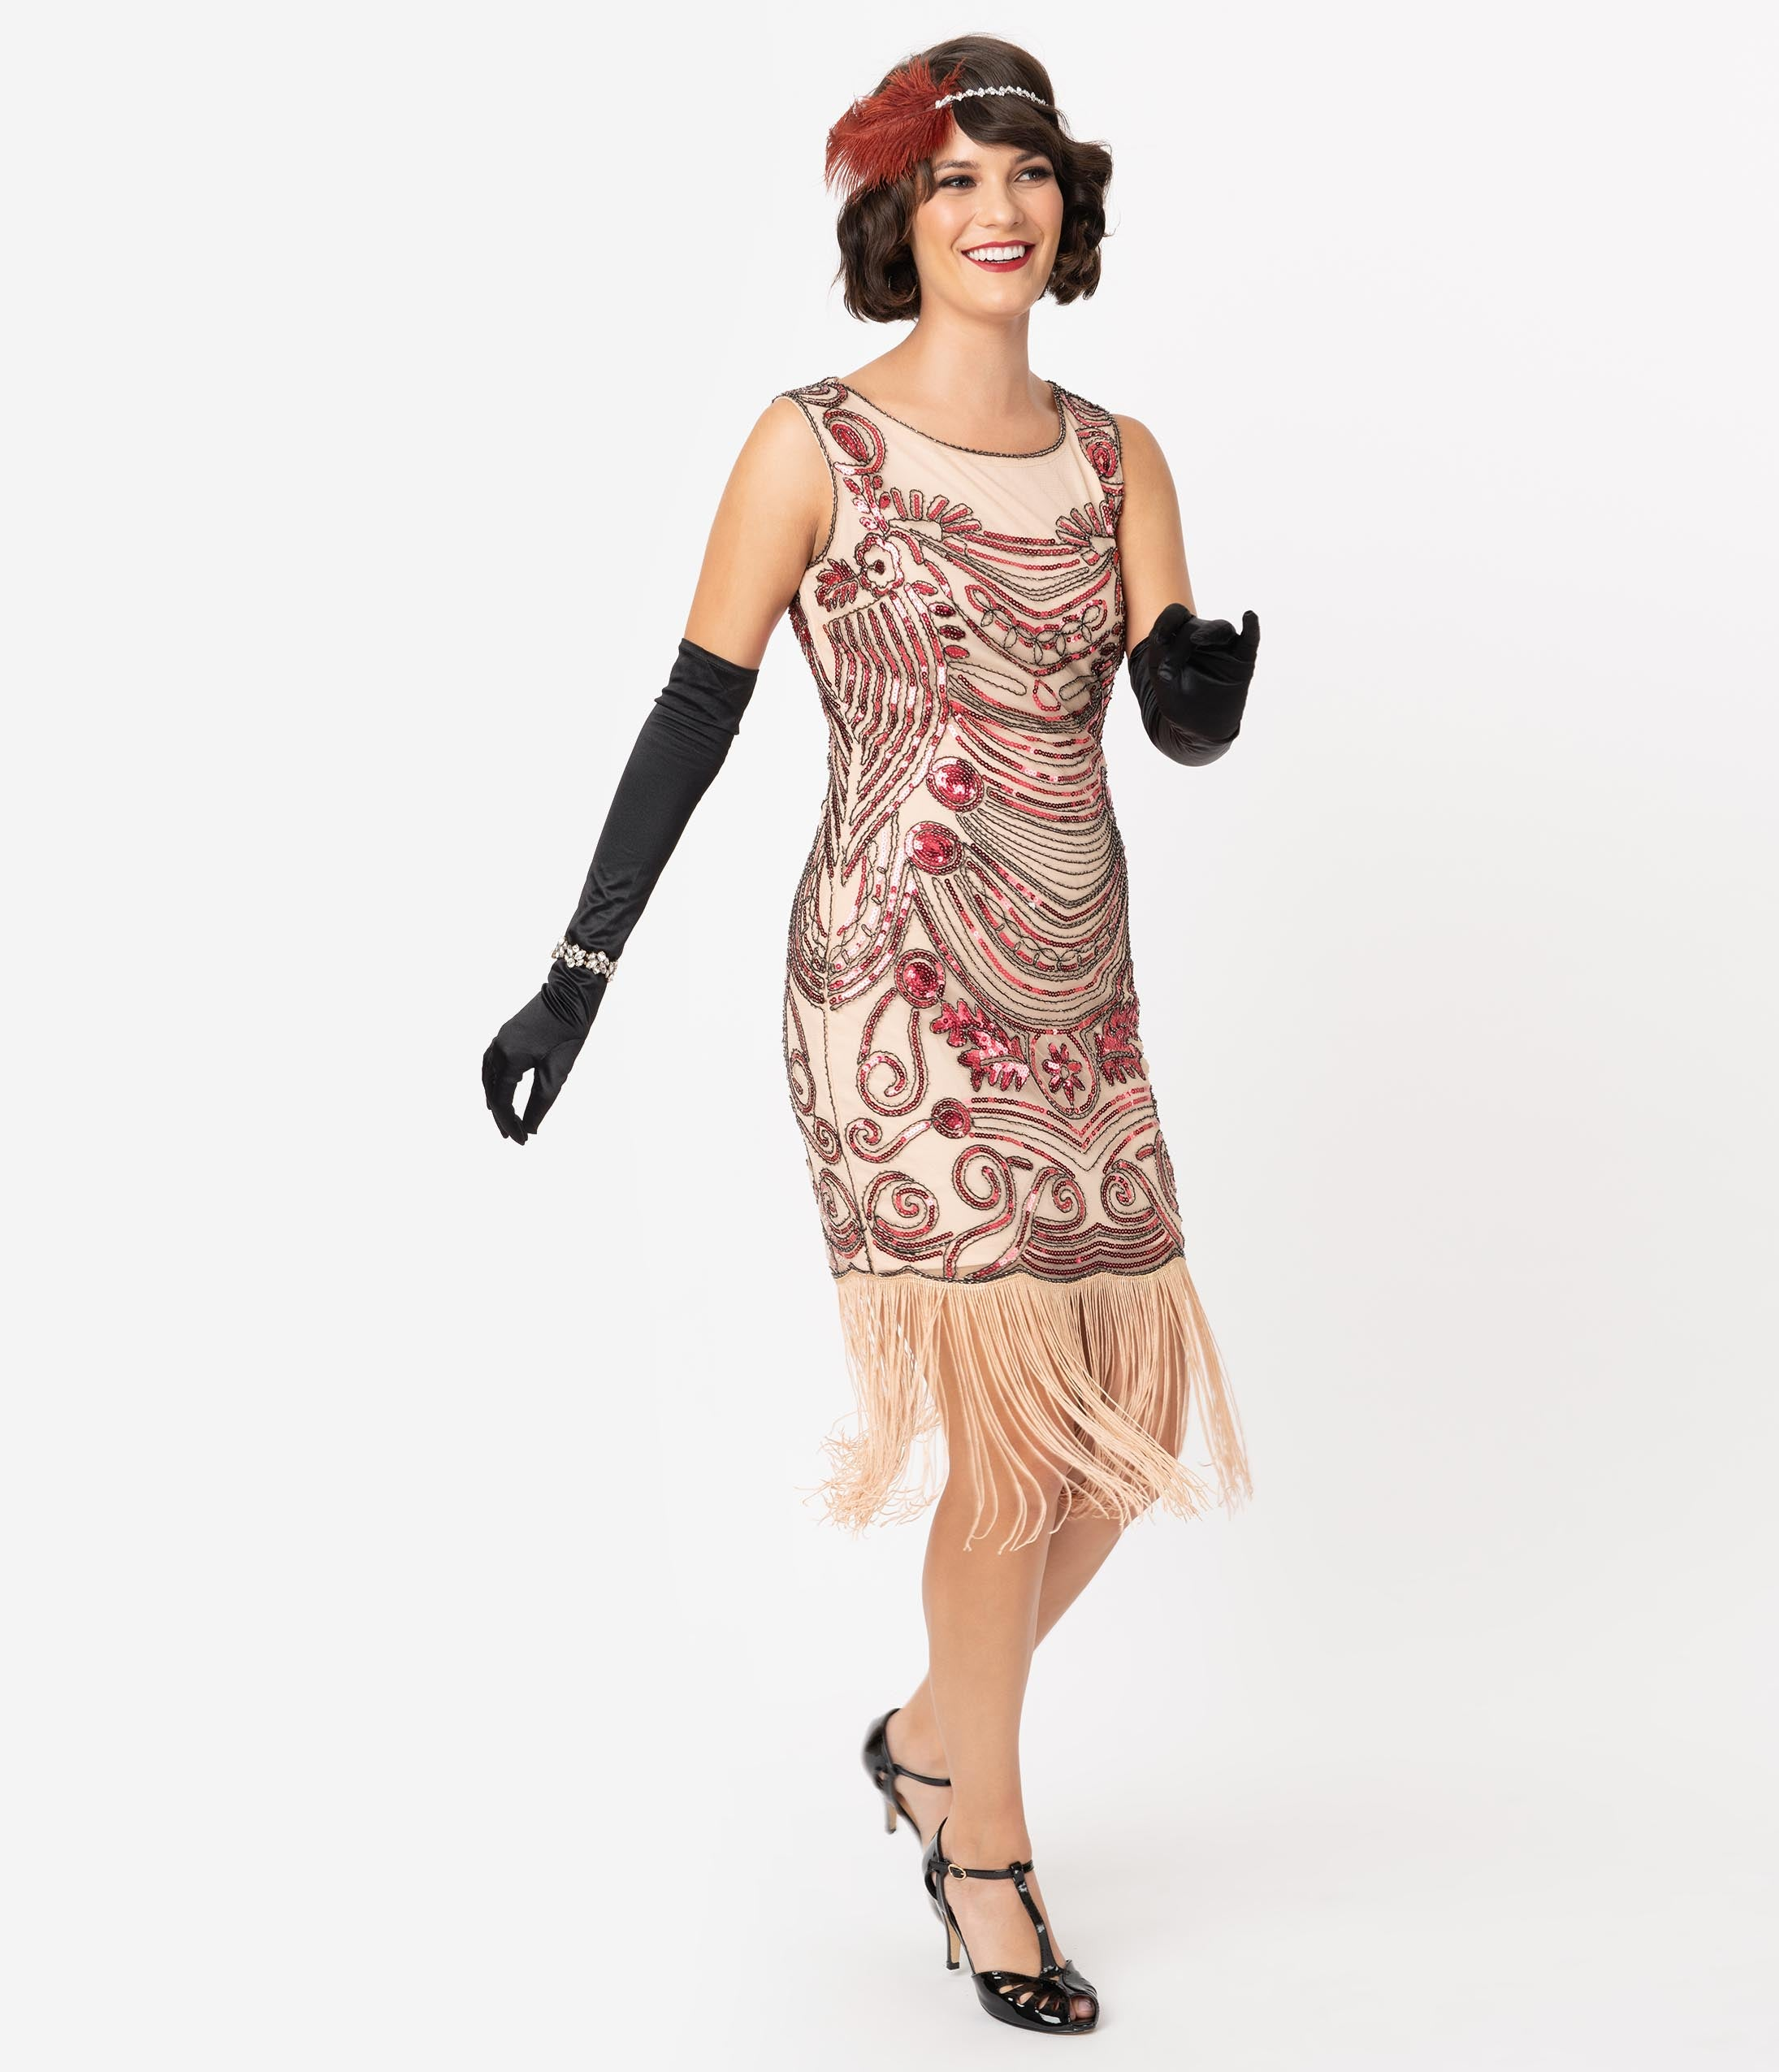 1920s Costumes: Flapper, Great Gatsby, Gangster Girl Unique Vintage 1920S Pink Beaded Yvette Fringe Cocktail Dress $98.00 AT vintagedancer.com